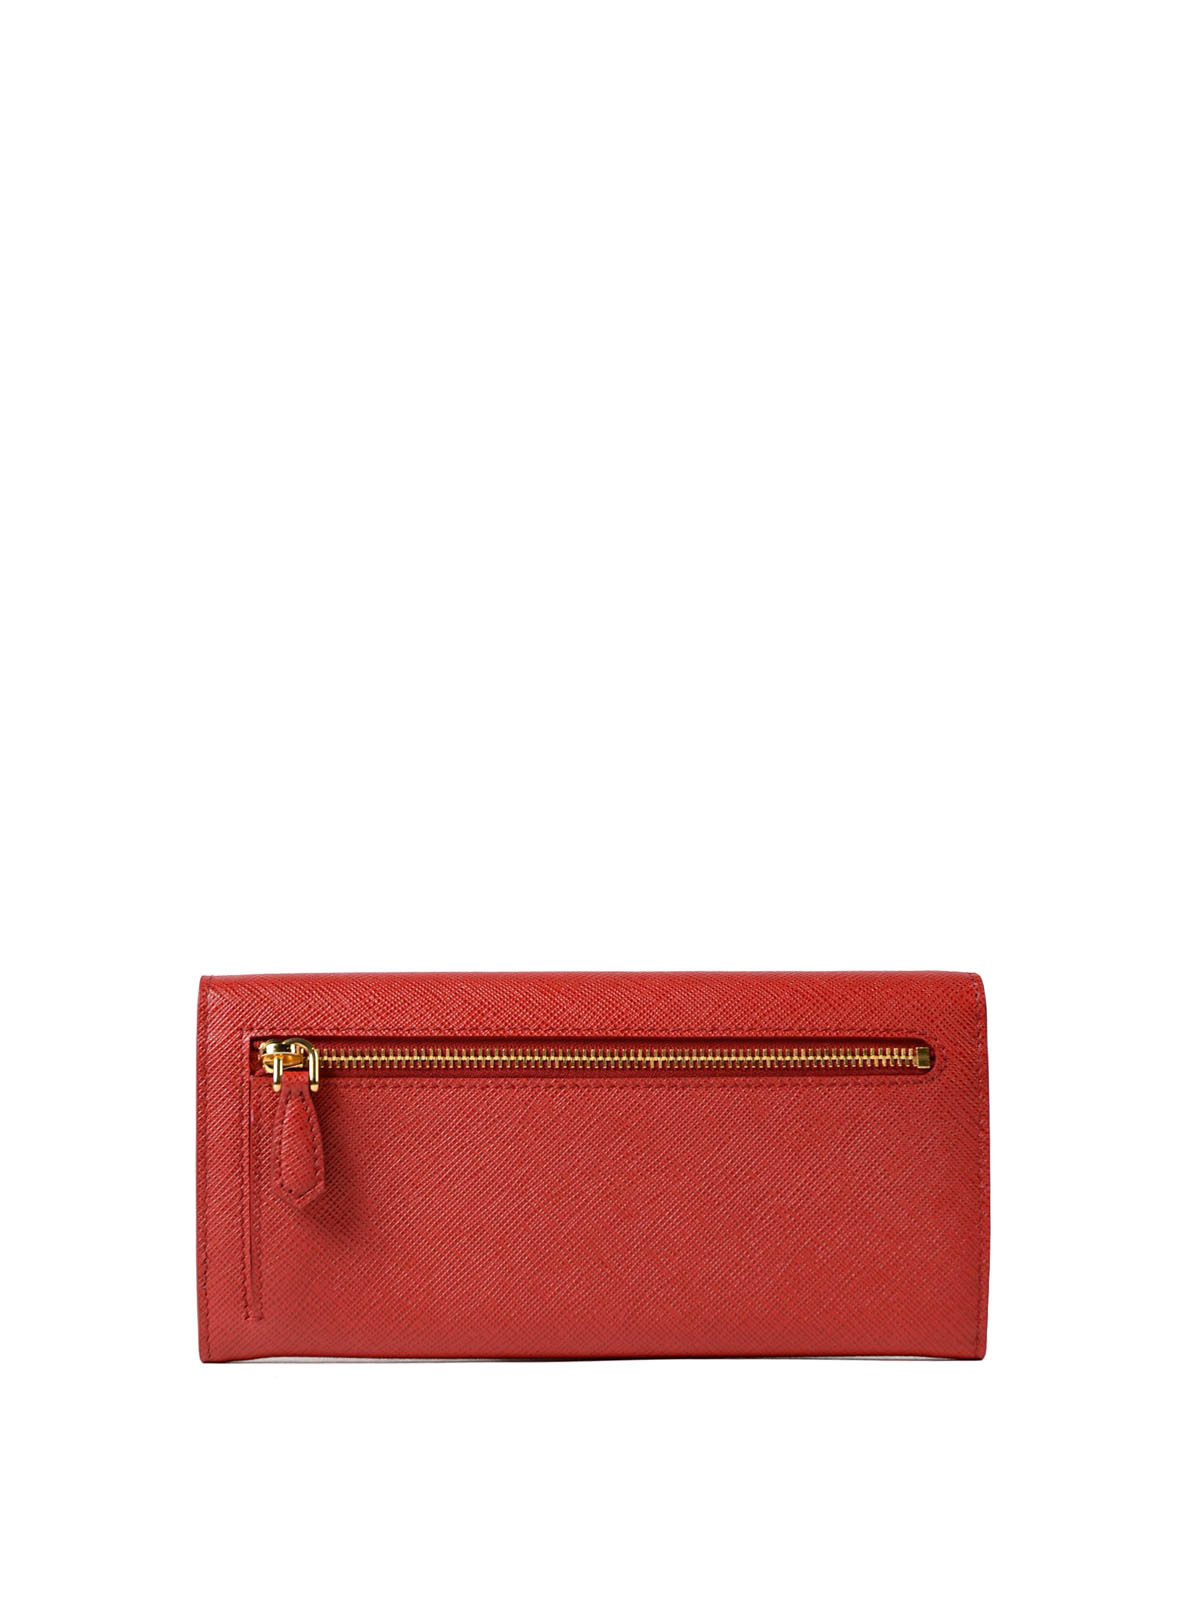 004aa9dadb89 iKRIX PRADA: wallets & purses - Red saffiano continental wallet